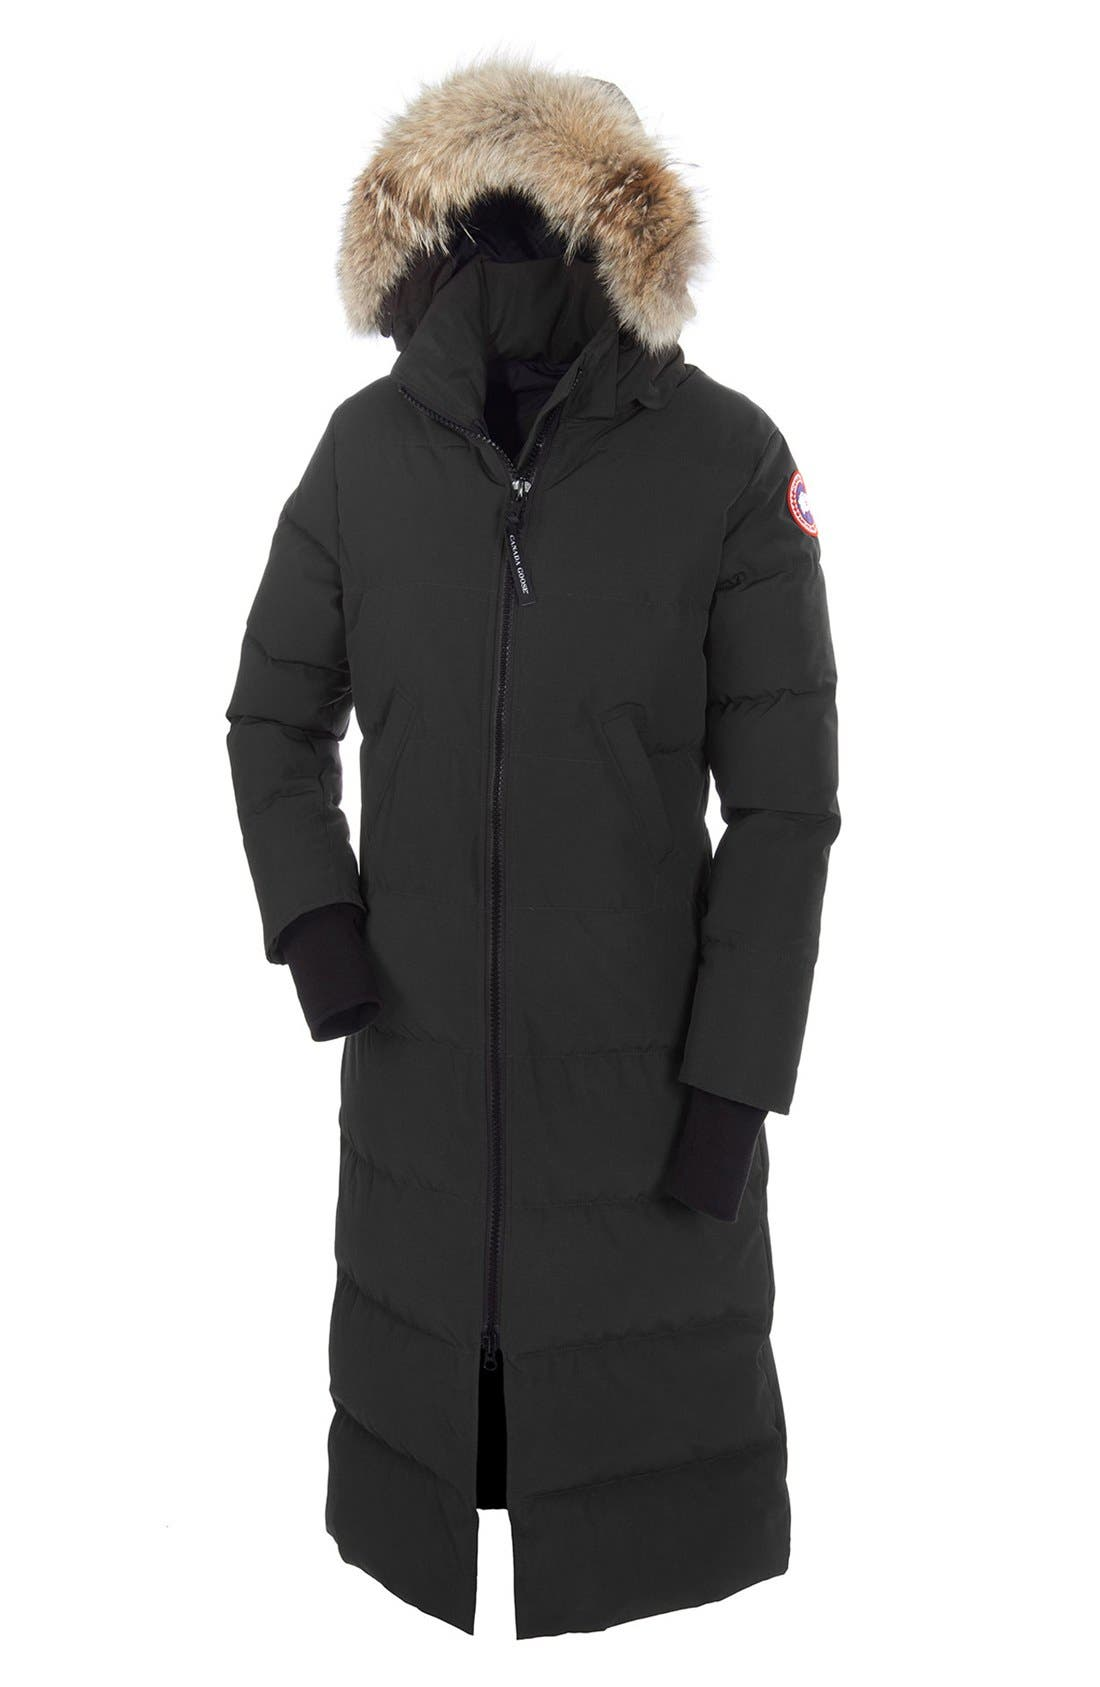 canada goose expedition parka graphite men's jacket